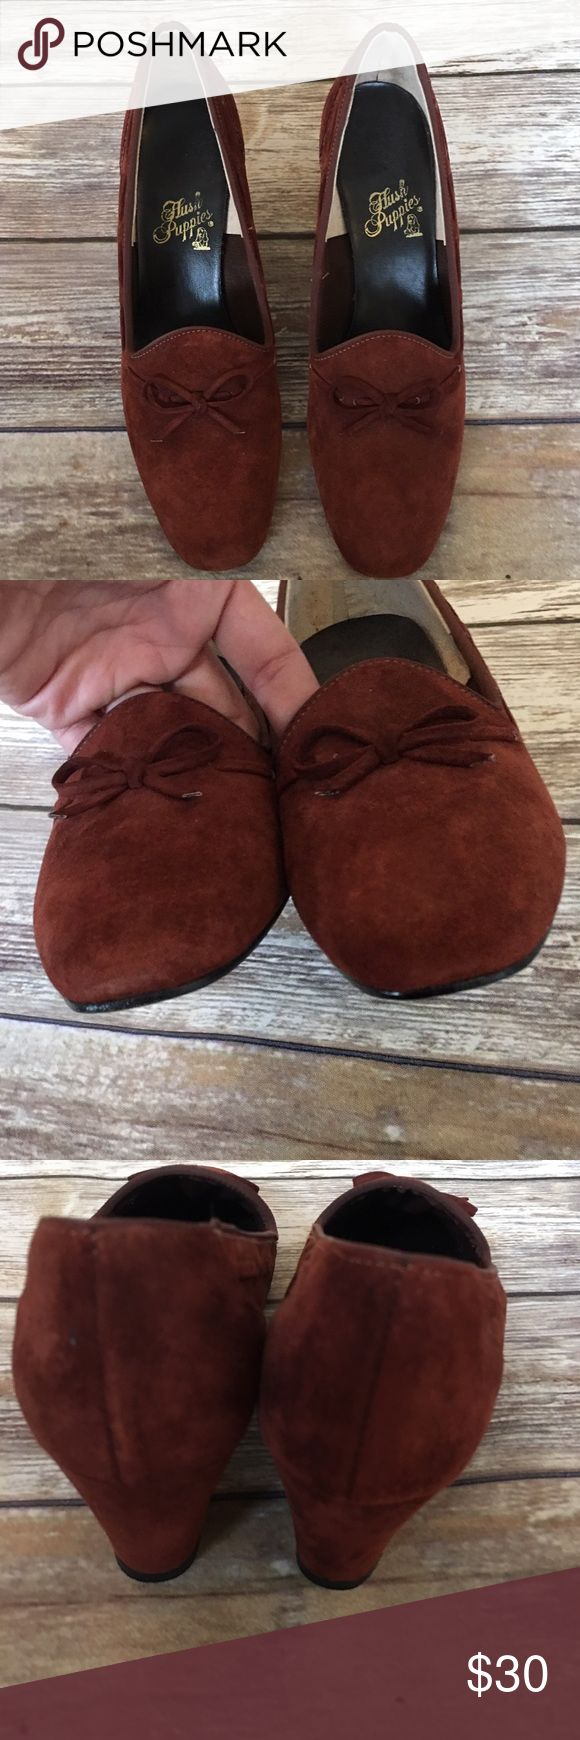 """🔴Hush Puppies Faux Suede Shoes Hush Puppies Faux Suede Shoes EUC. Heel height 2.25"""" Hush Puppies Shoes"""